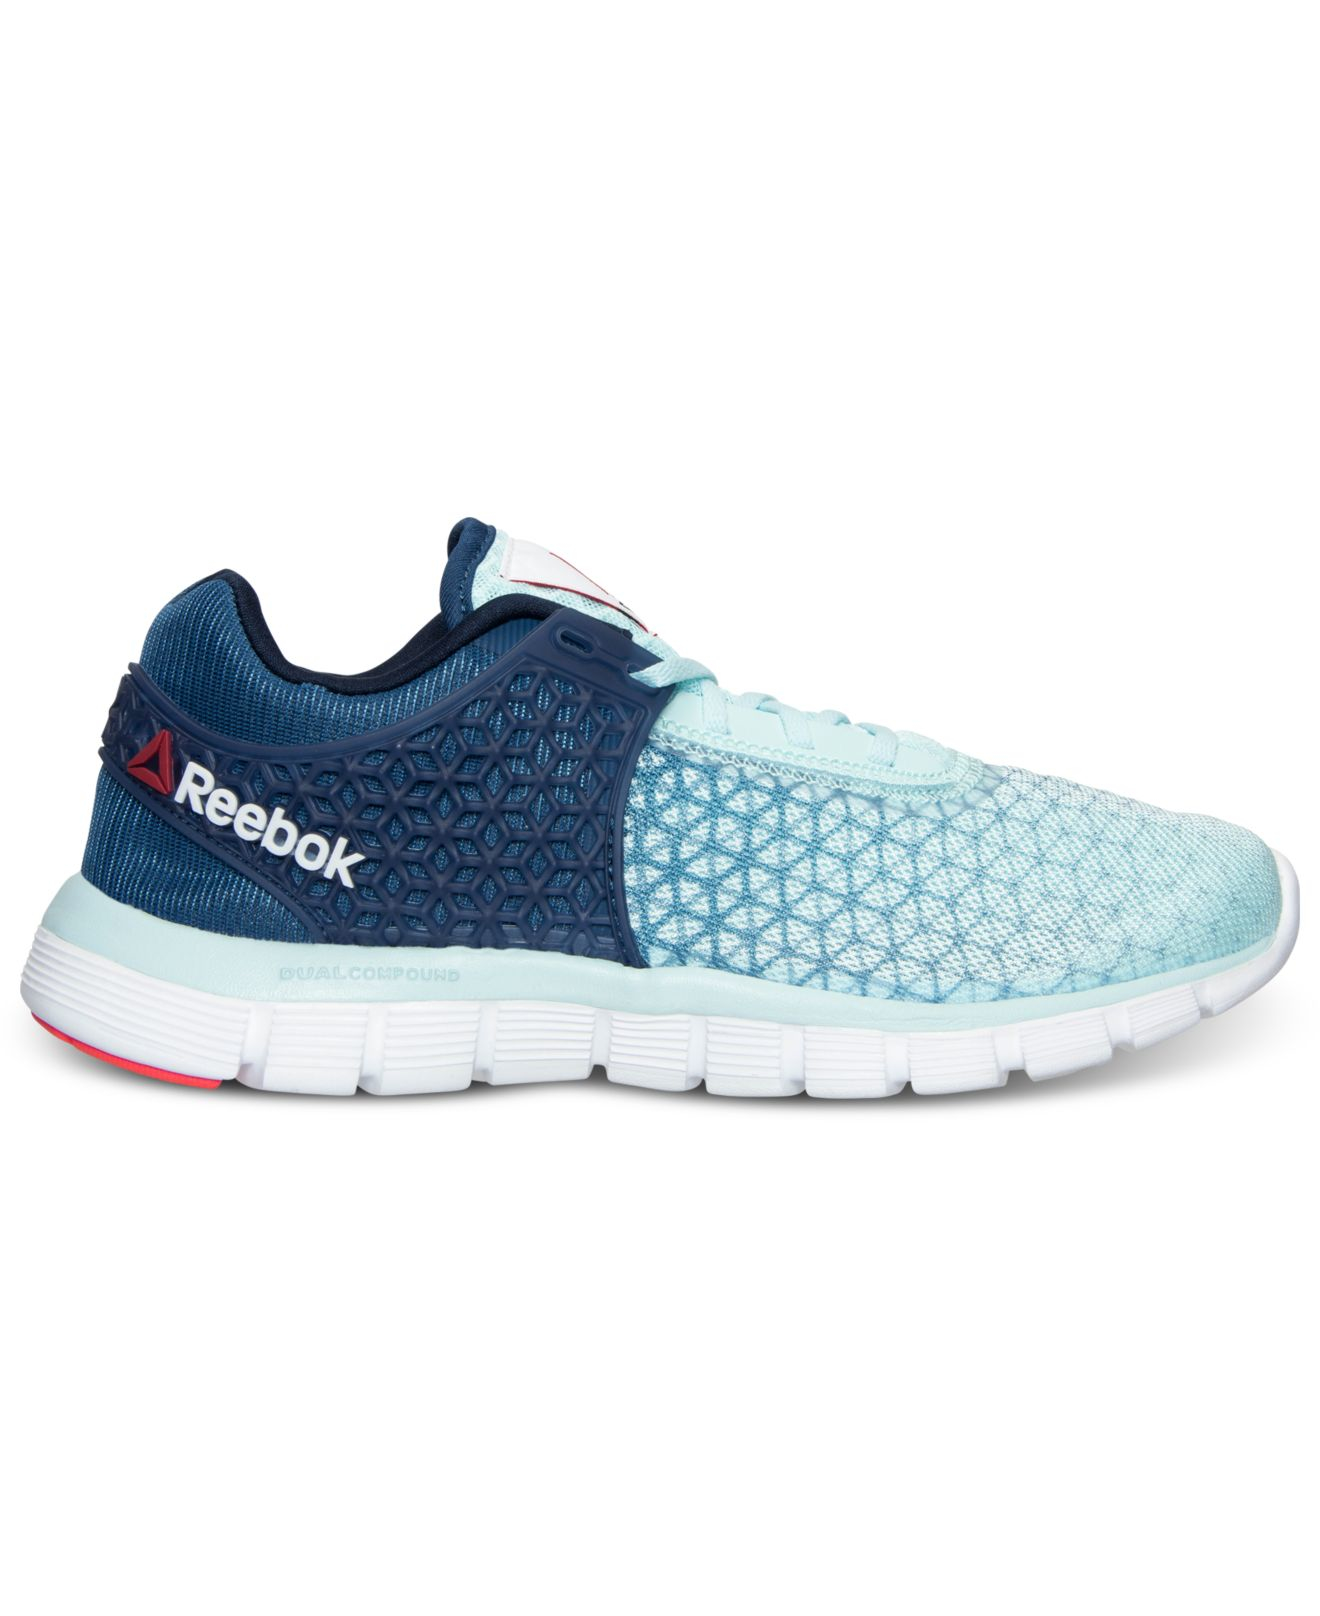 Dual Rush 0 Line 2 From Women's Z Sneakers Running Finish A4cRq53jLS